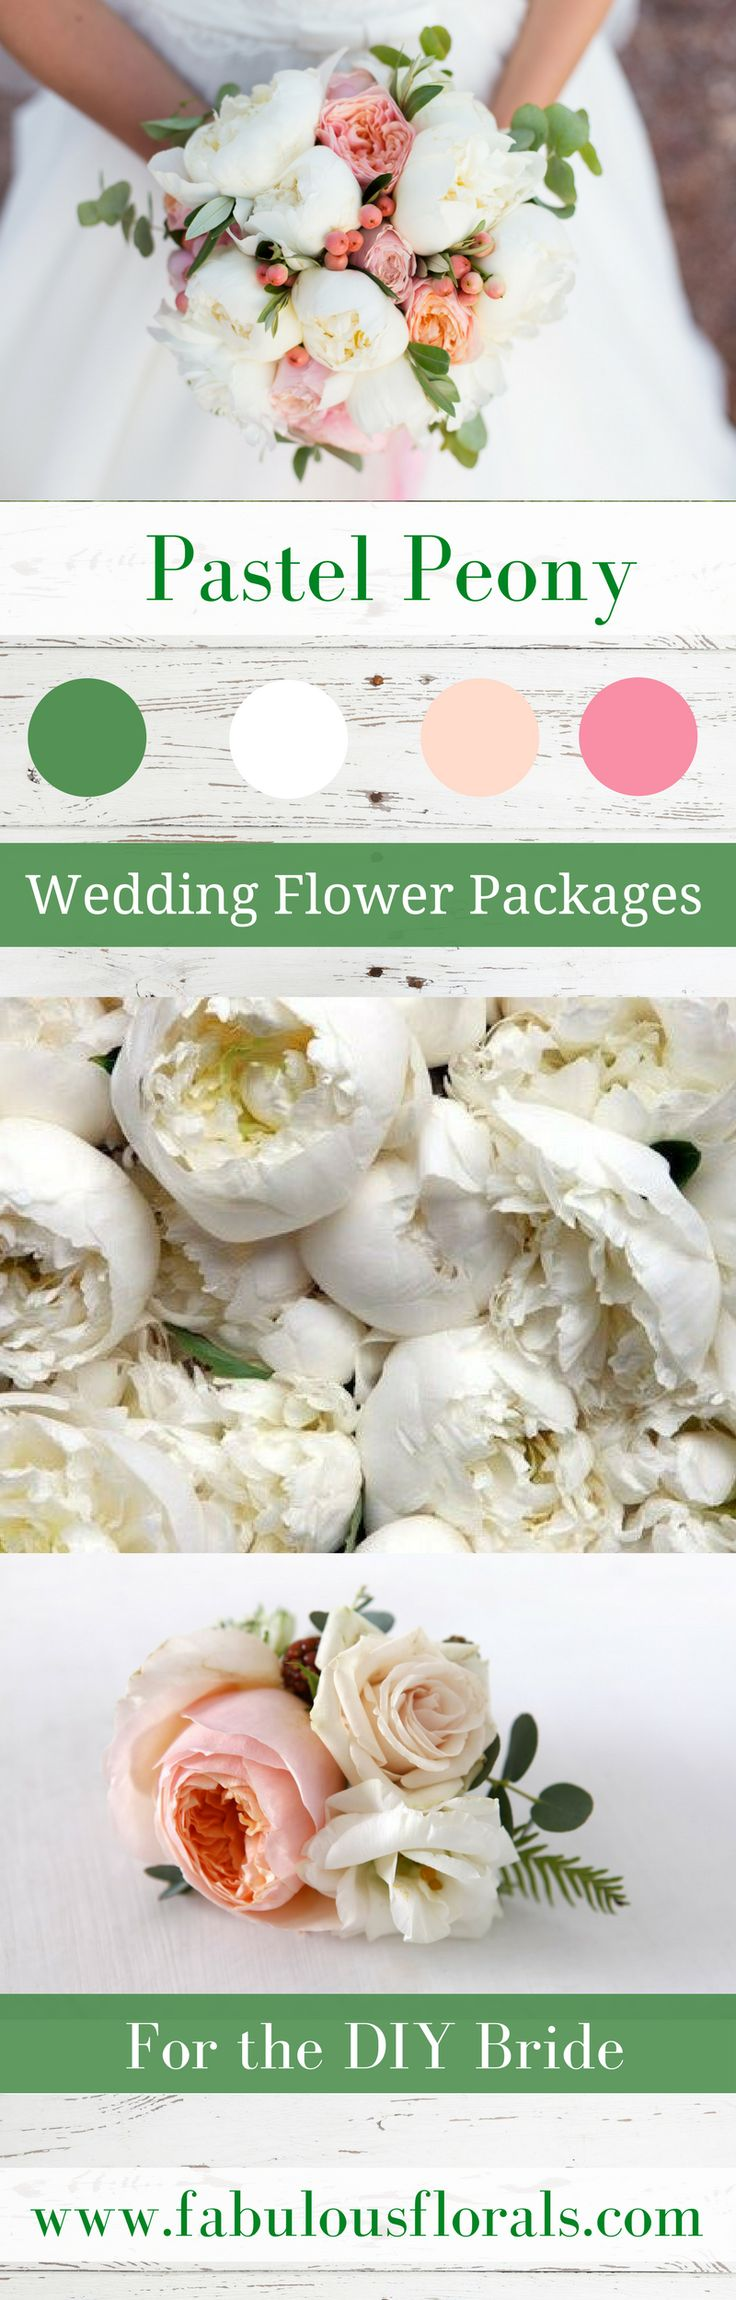 Wedding Trends! DIY Wedding Flower Packages for the DIY Bride! Pretty Pastel Peony Palette. Easy How To Tutorials and instructions on www.howtodiyweddingflowers.com #weddingtrends #weddingpackages #weddingflowers